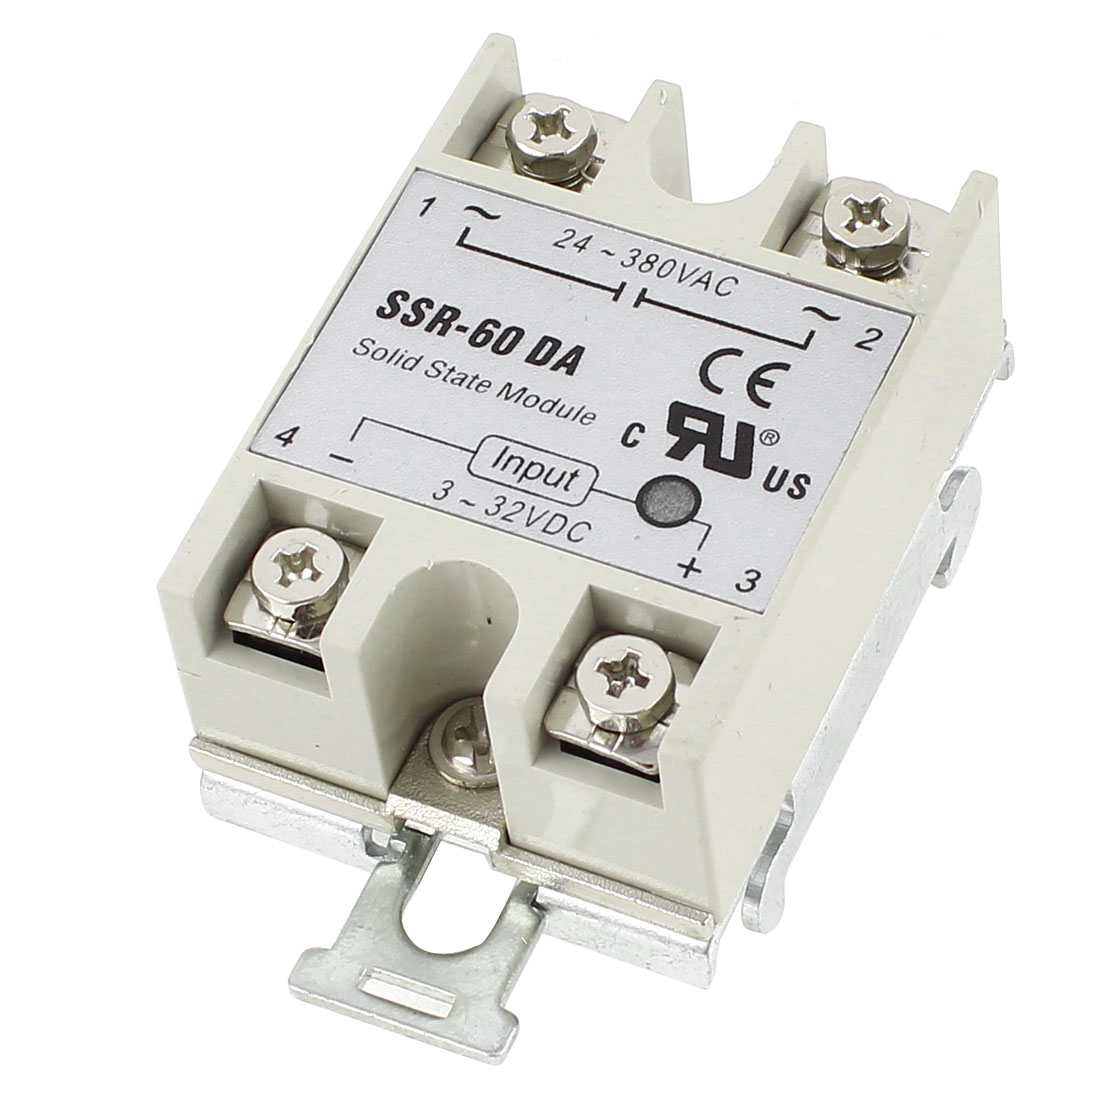 DC 3-32V to AC 24-380V 60A 35mm DIN Rail Mount 4 Screw Terminal Single Phase Solid State Relay w Bracket Socket